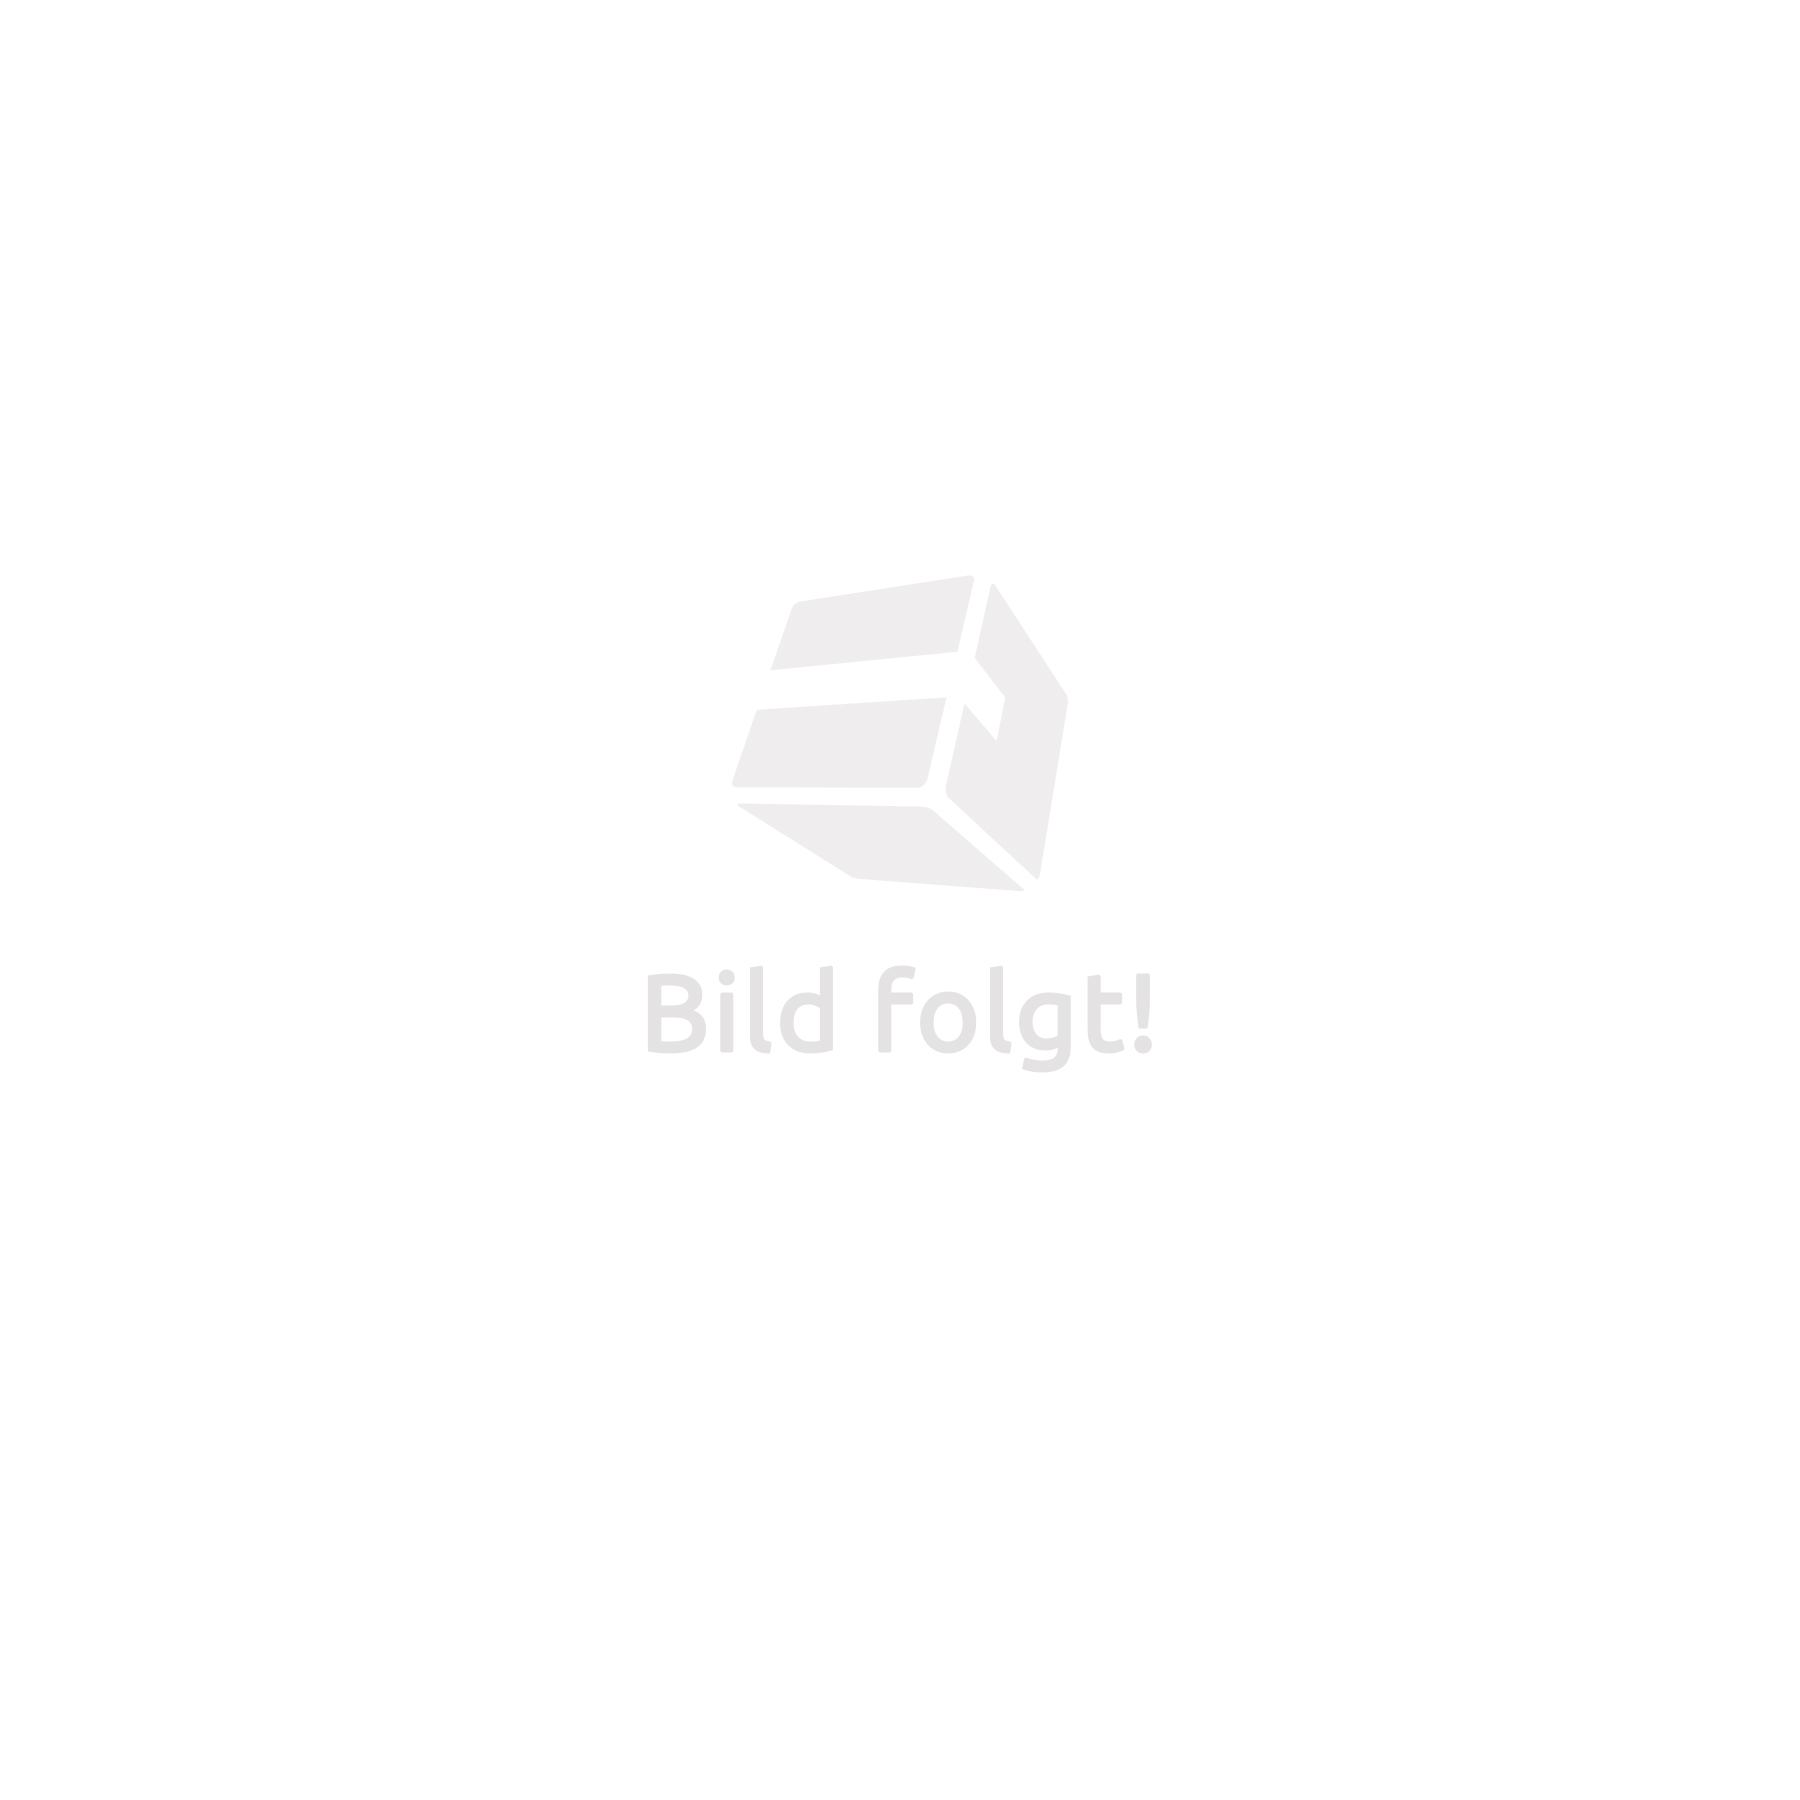 Rollcontainer aus Metall